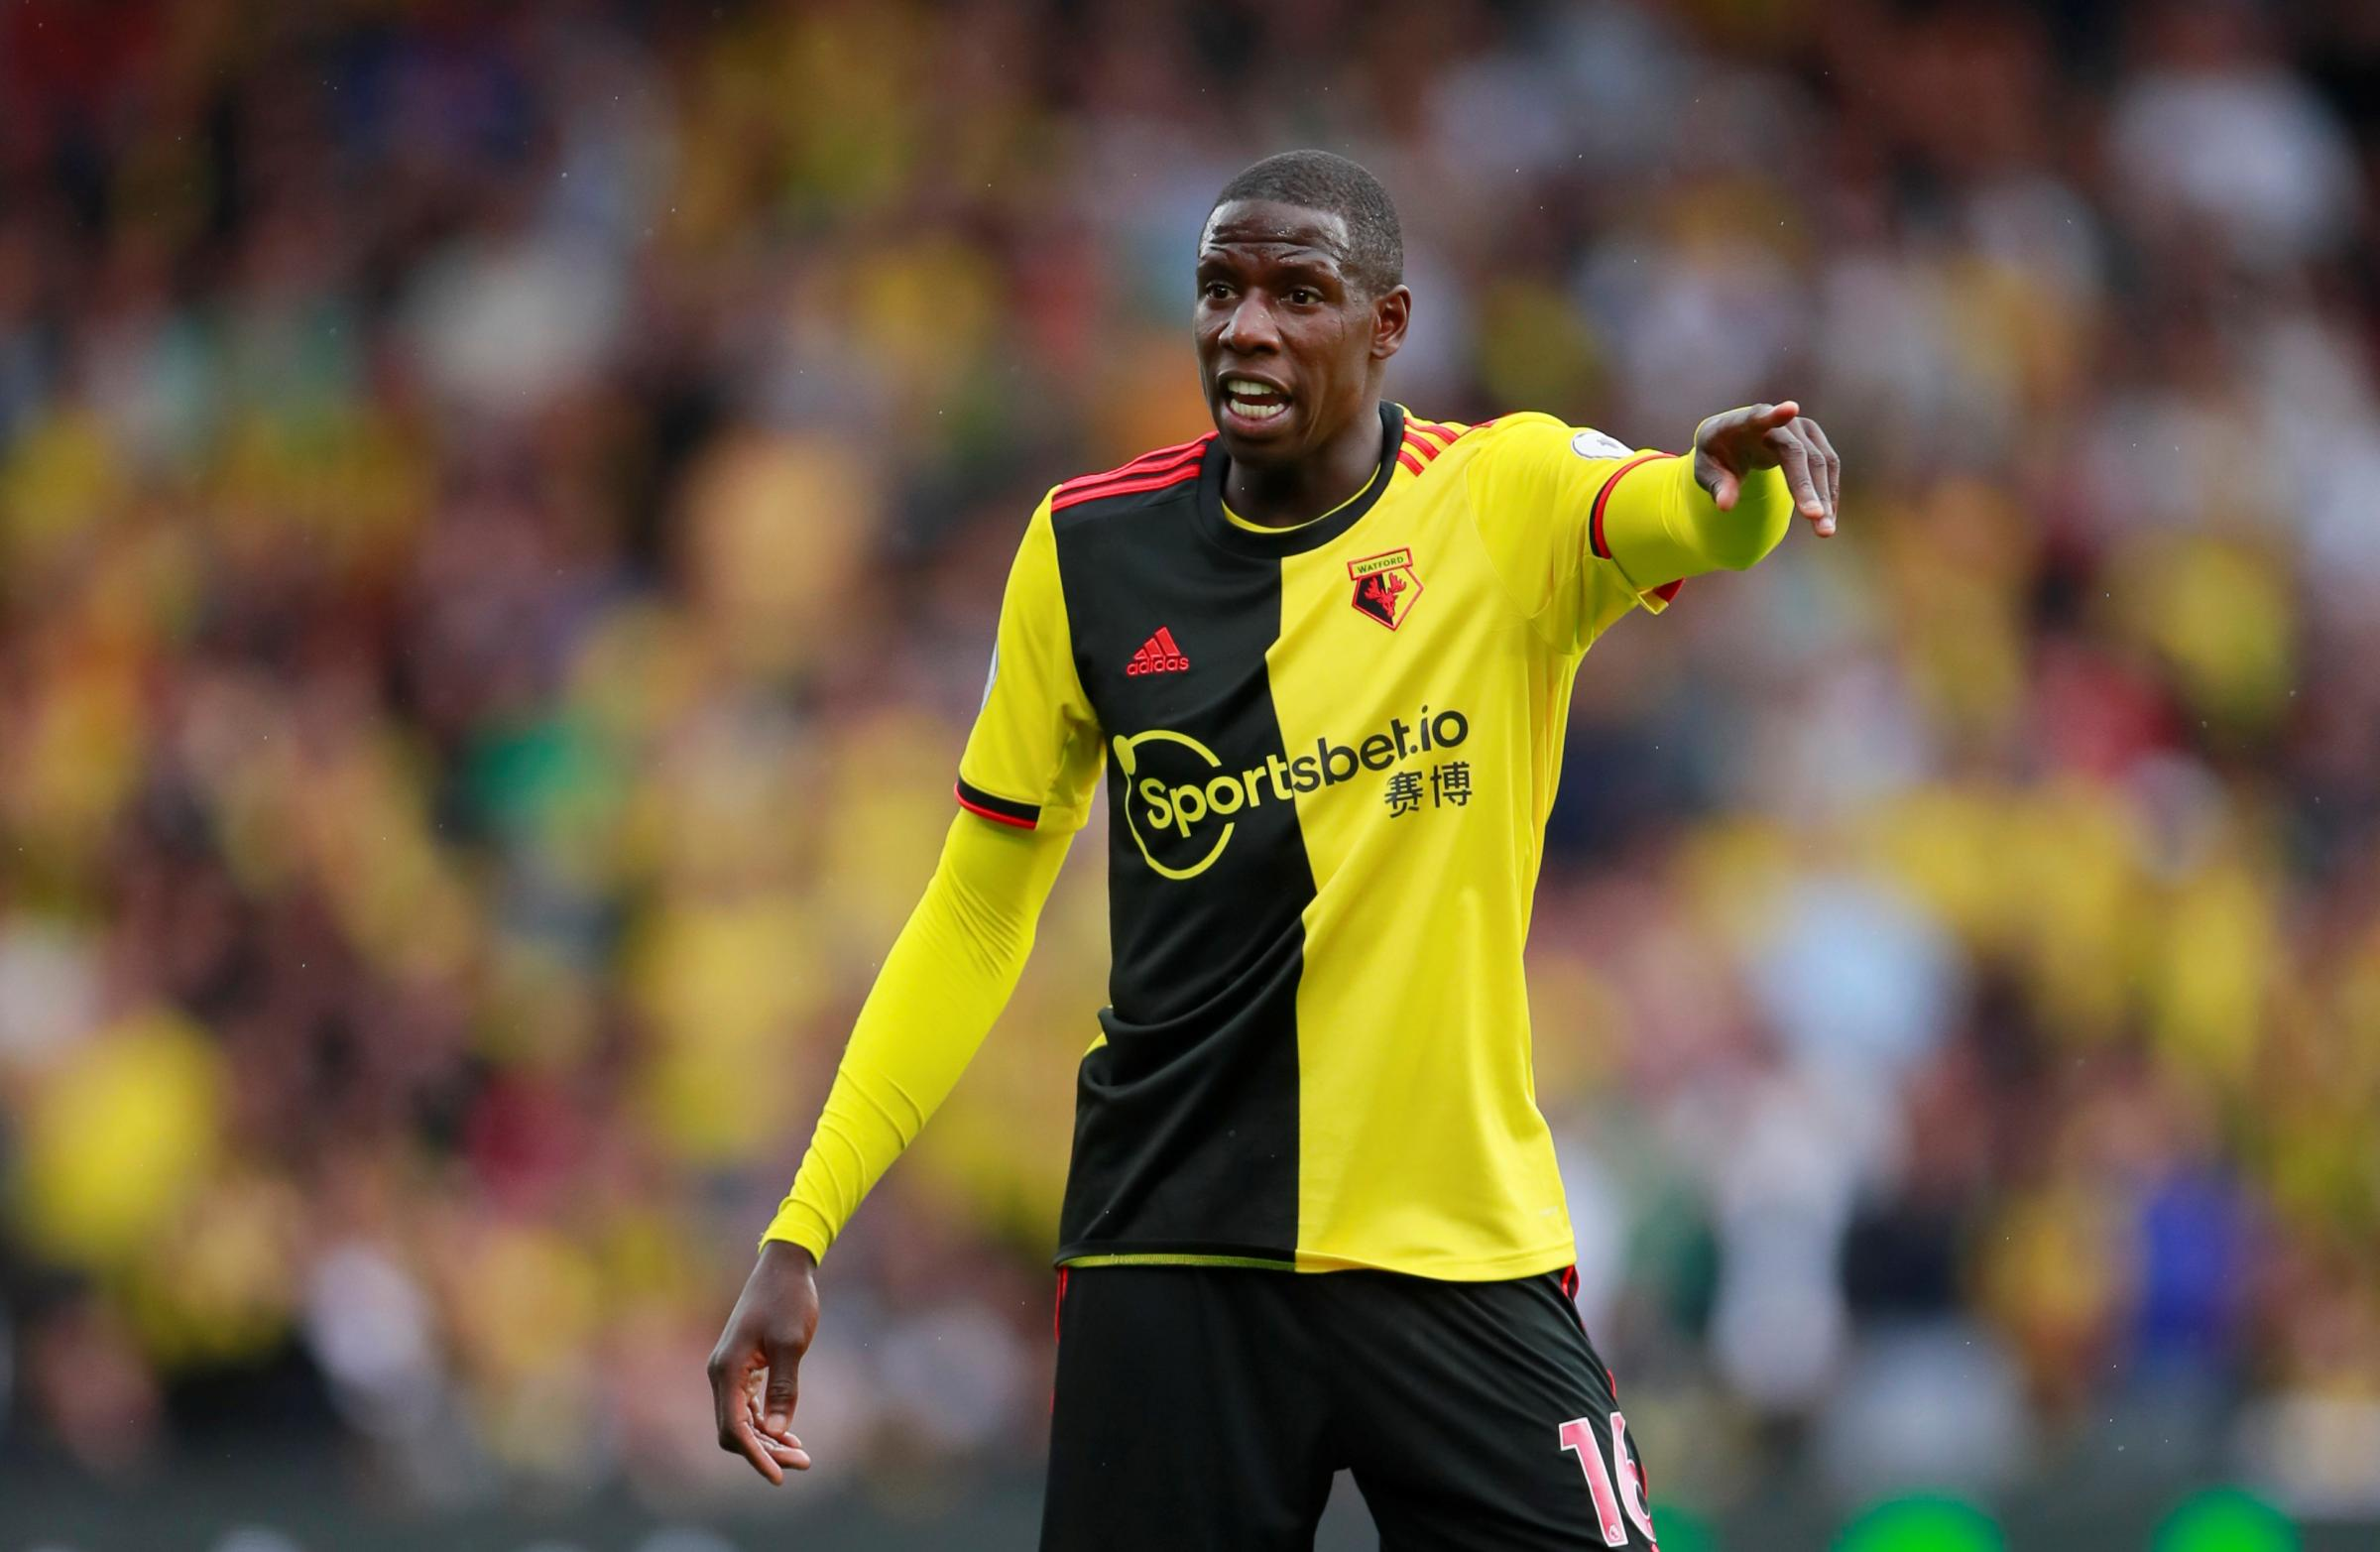 Watford's Abdoulaye Doucoure was not distracted by Everton bids says Javi Gracia